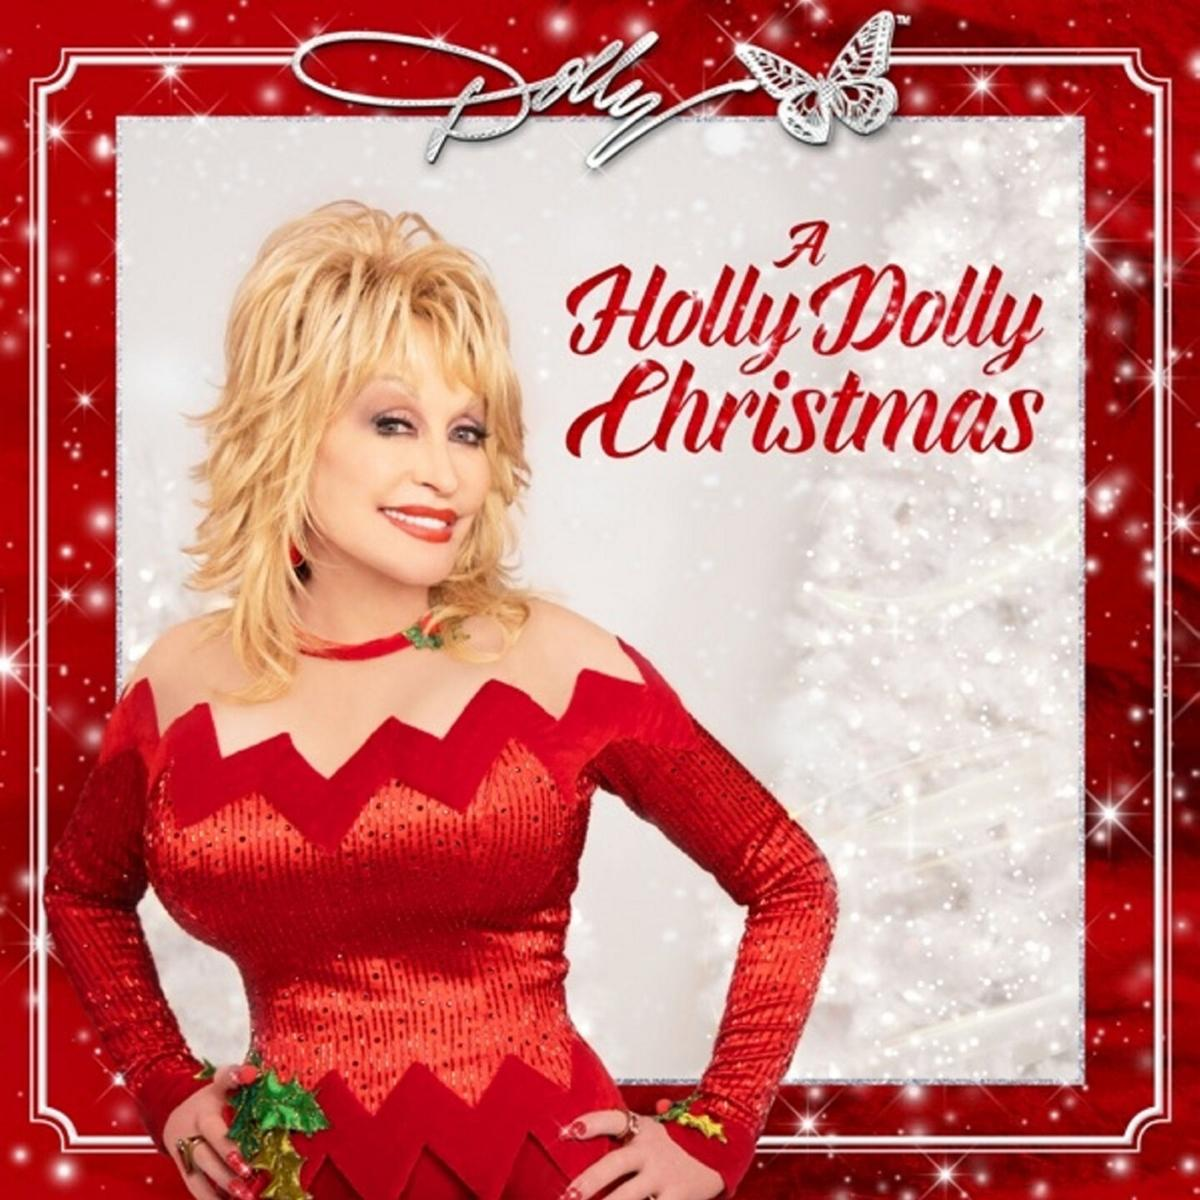 Dolly Parton says it's time for Christmas music